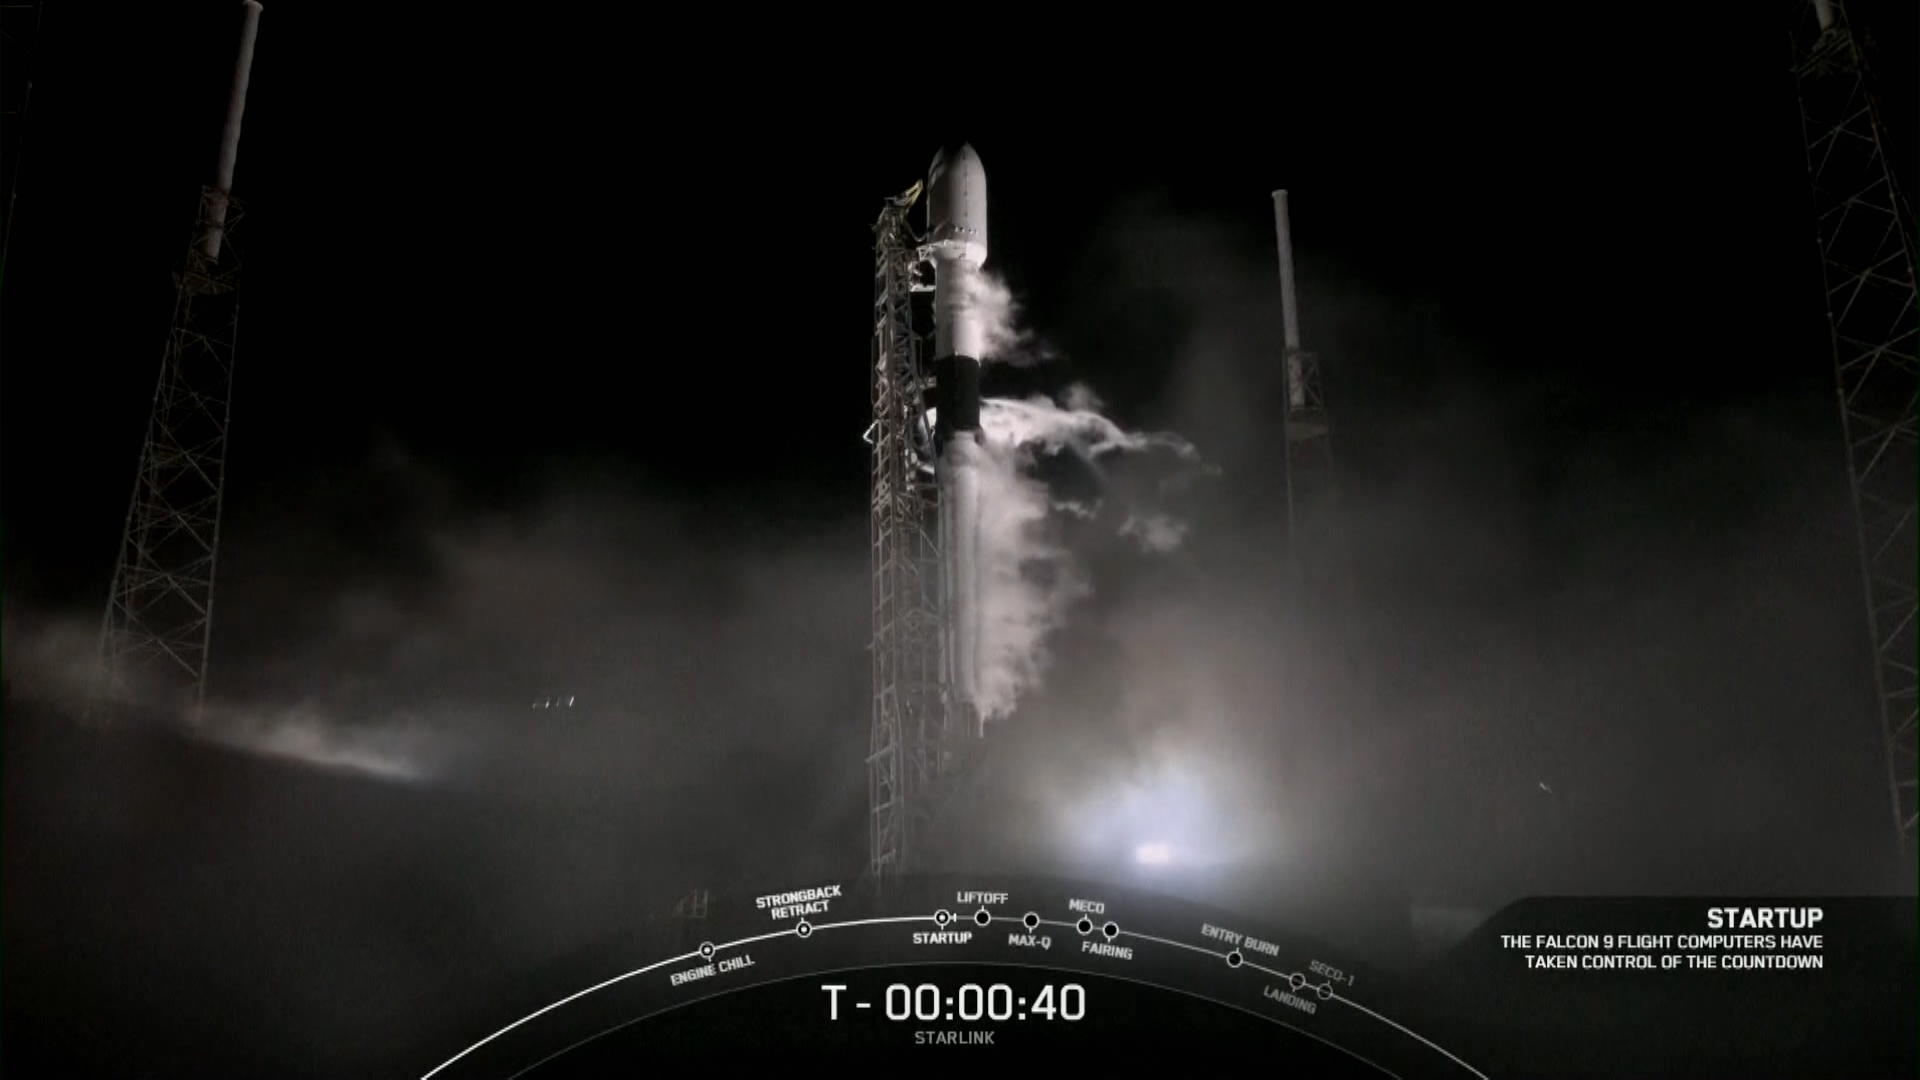 SpaceX Launches Falcon 9 Carrying 60 Starlink Satellites